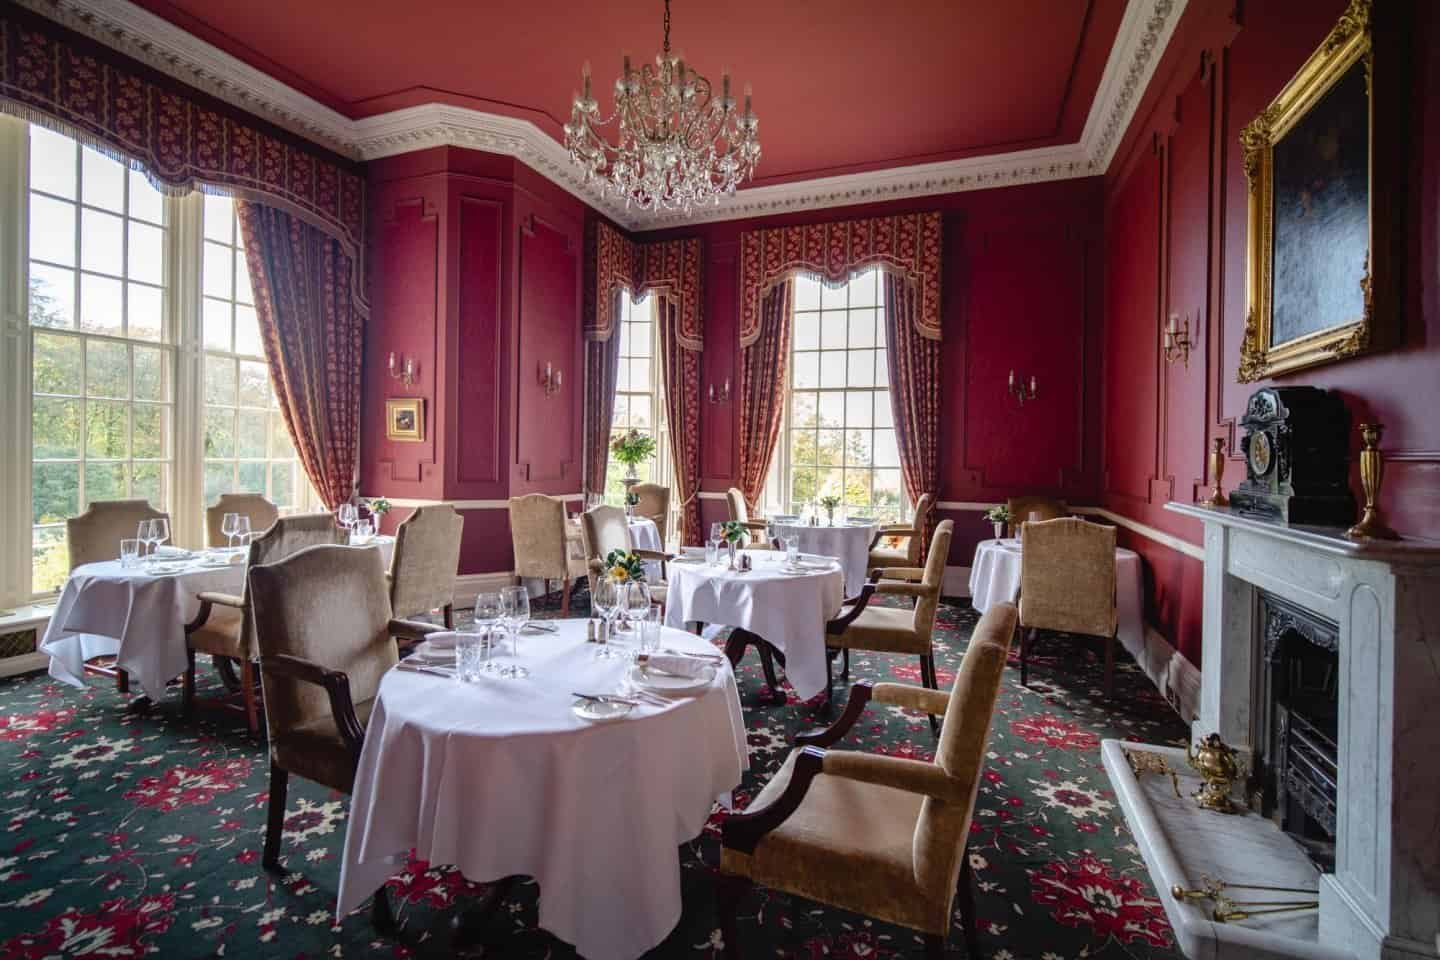 One of the dining rooms at Glenapp Castle